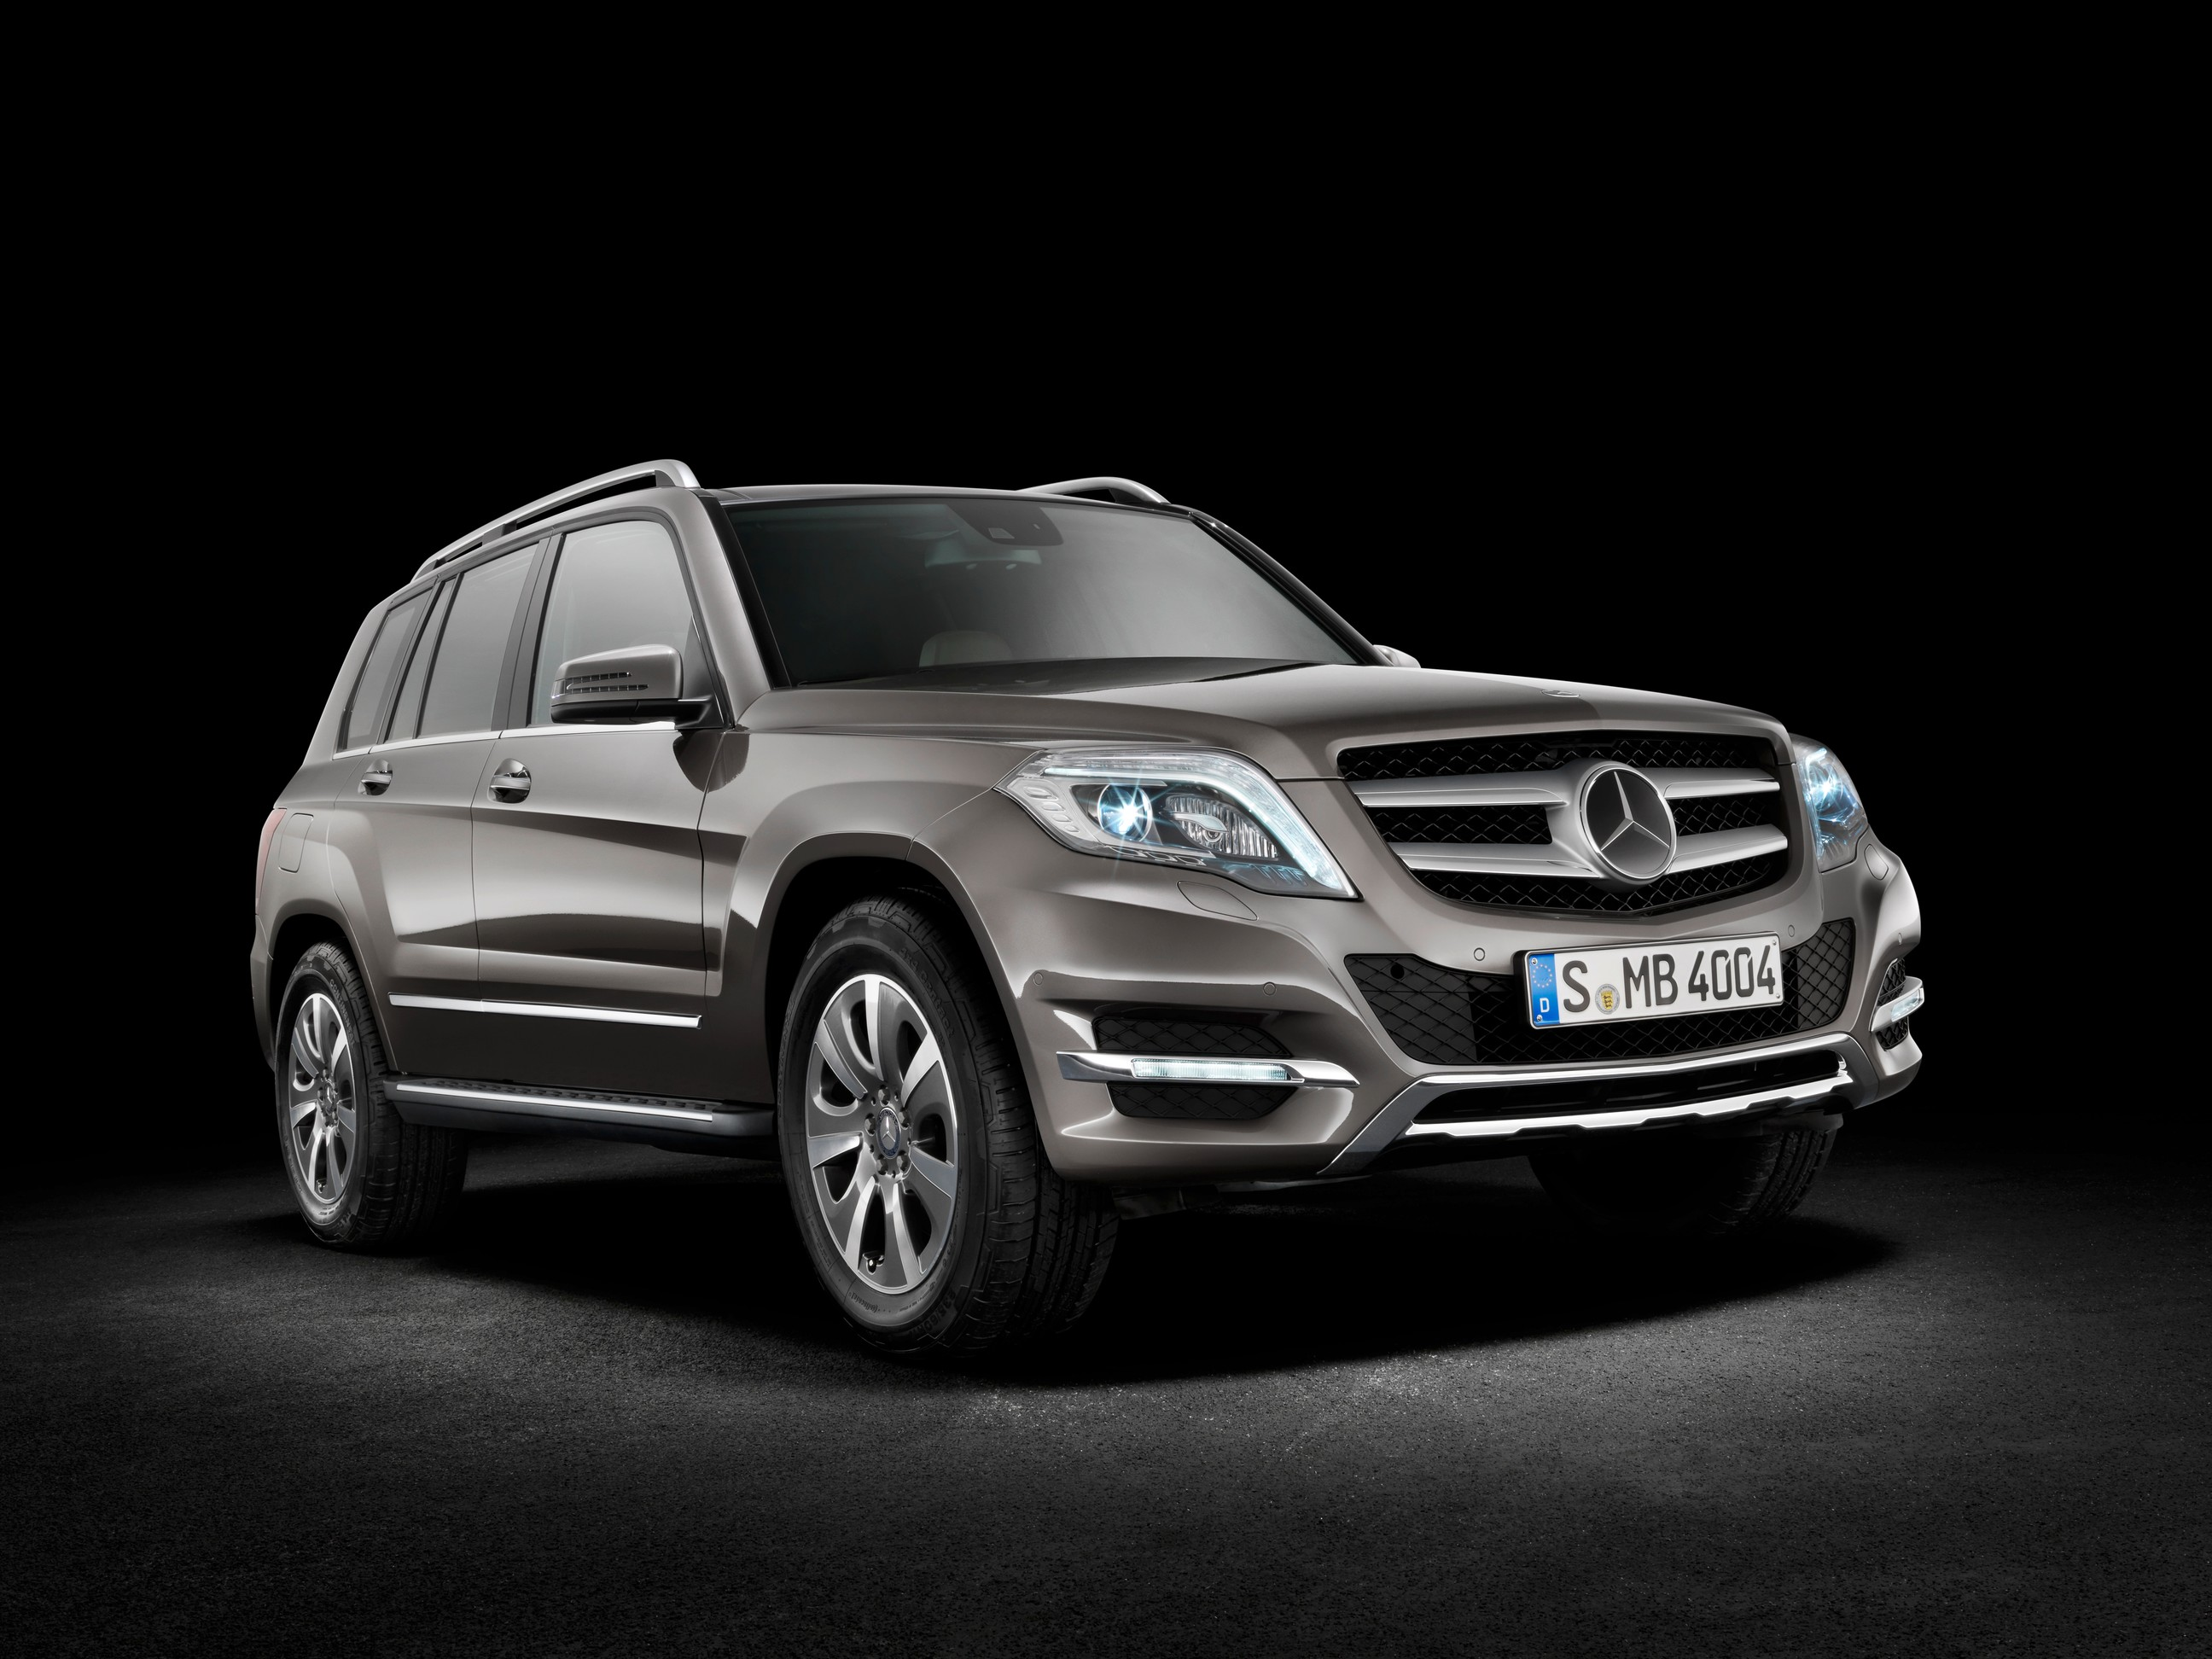 fiche technique mercedes classe glk x204 220 cdi auto titre. Black Bedroom Furniture Sets. Home Design Ideas